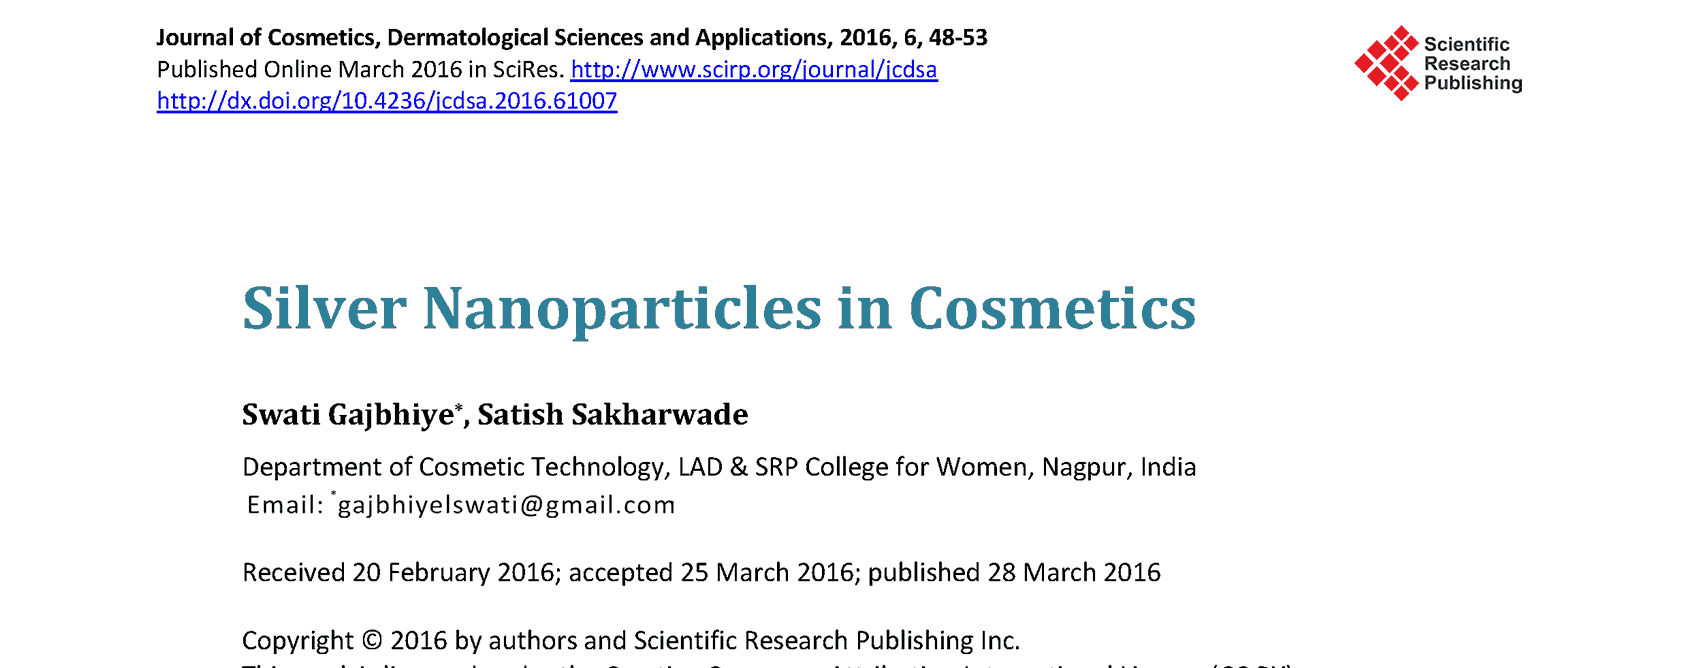 Silver Nanoparticles in Cosmetics Thumbnail